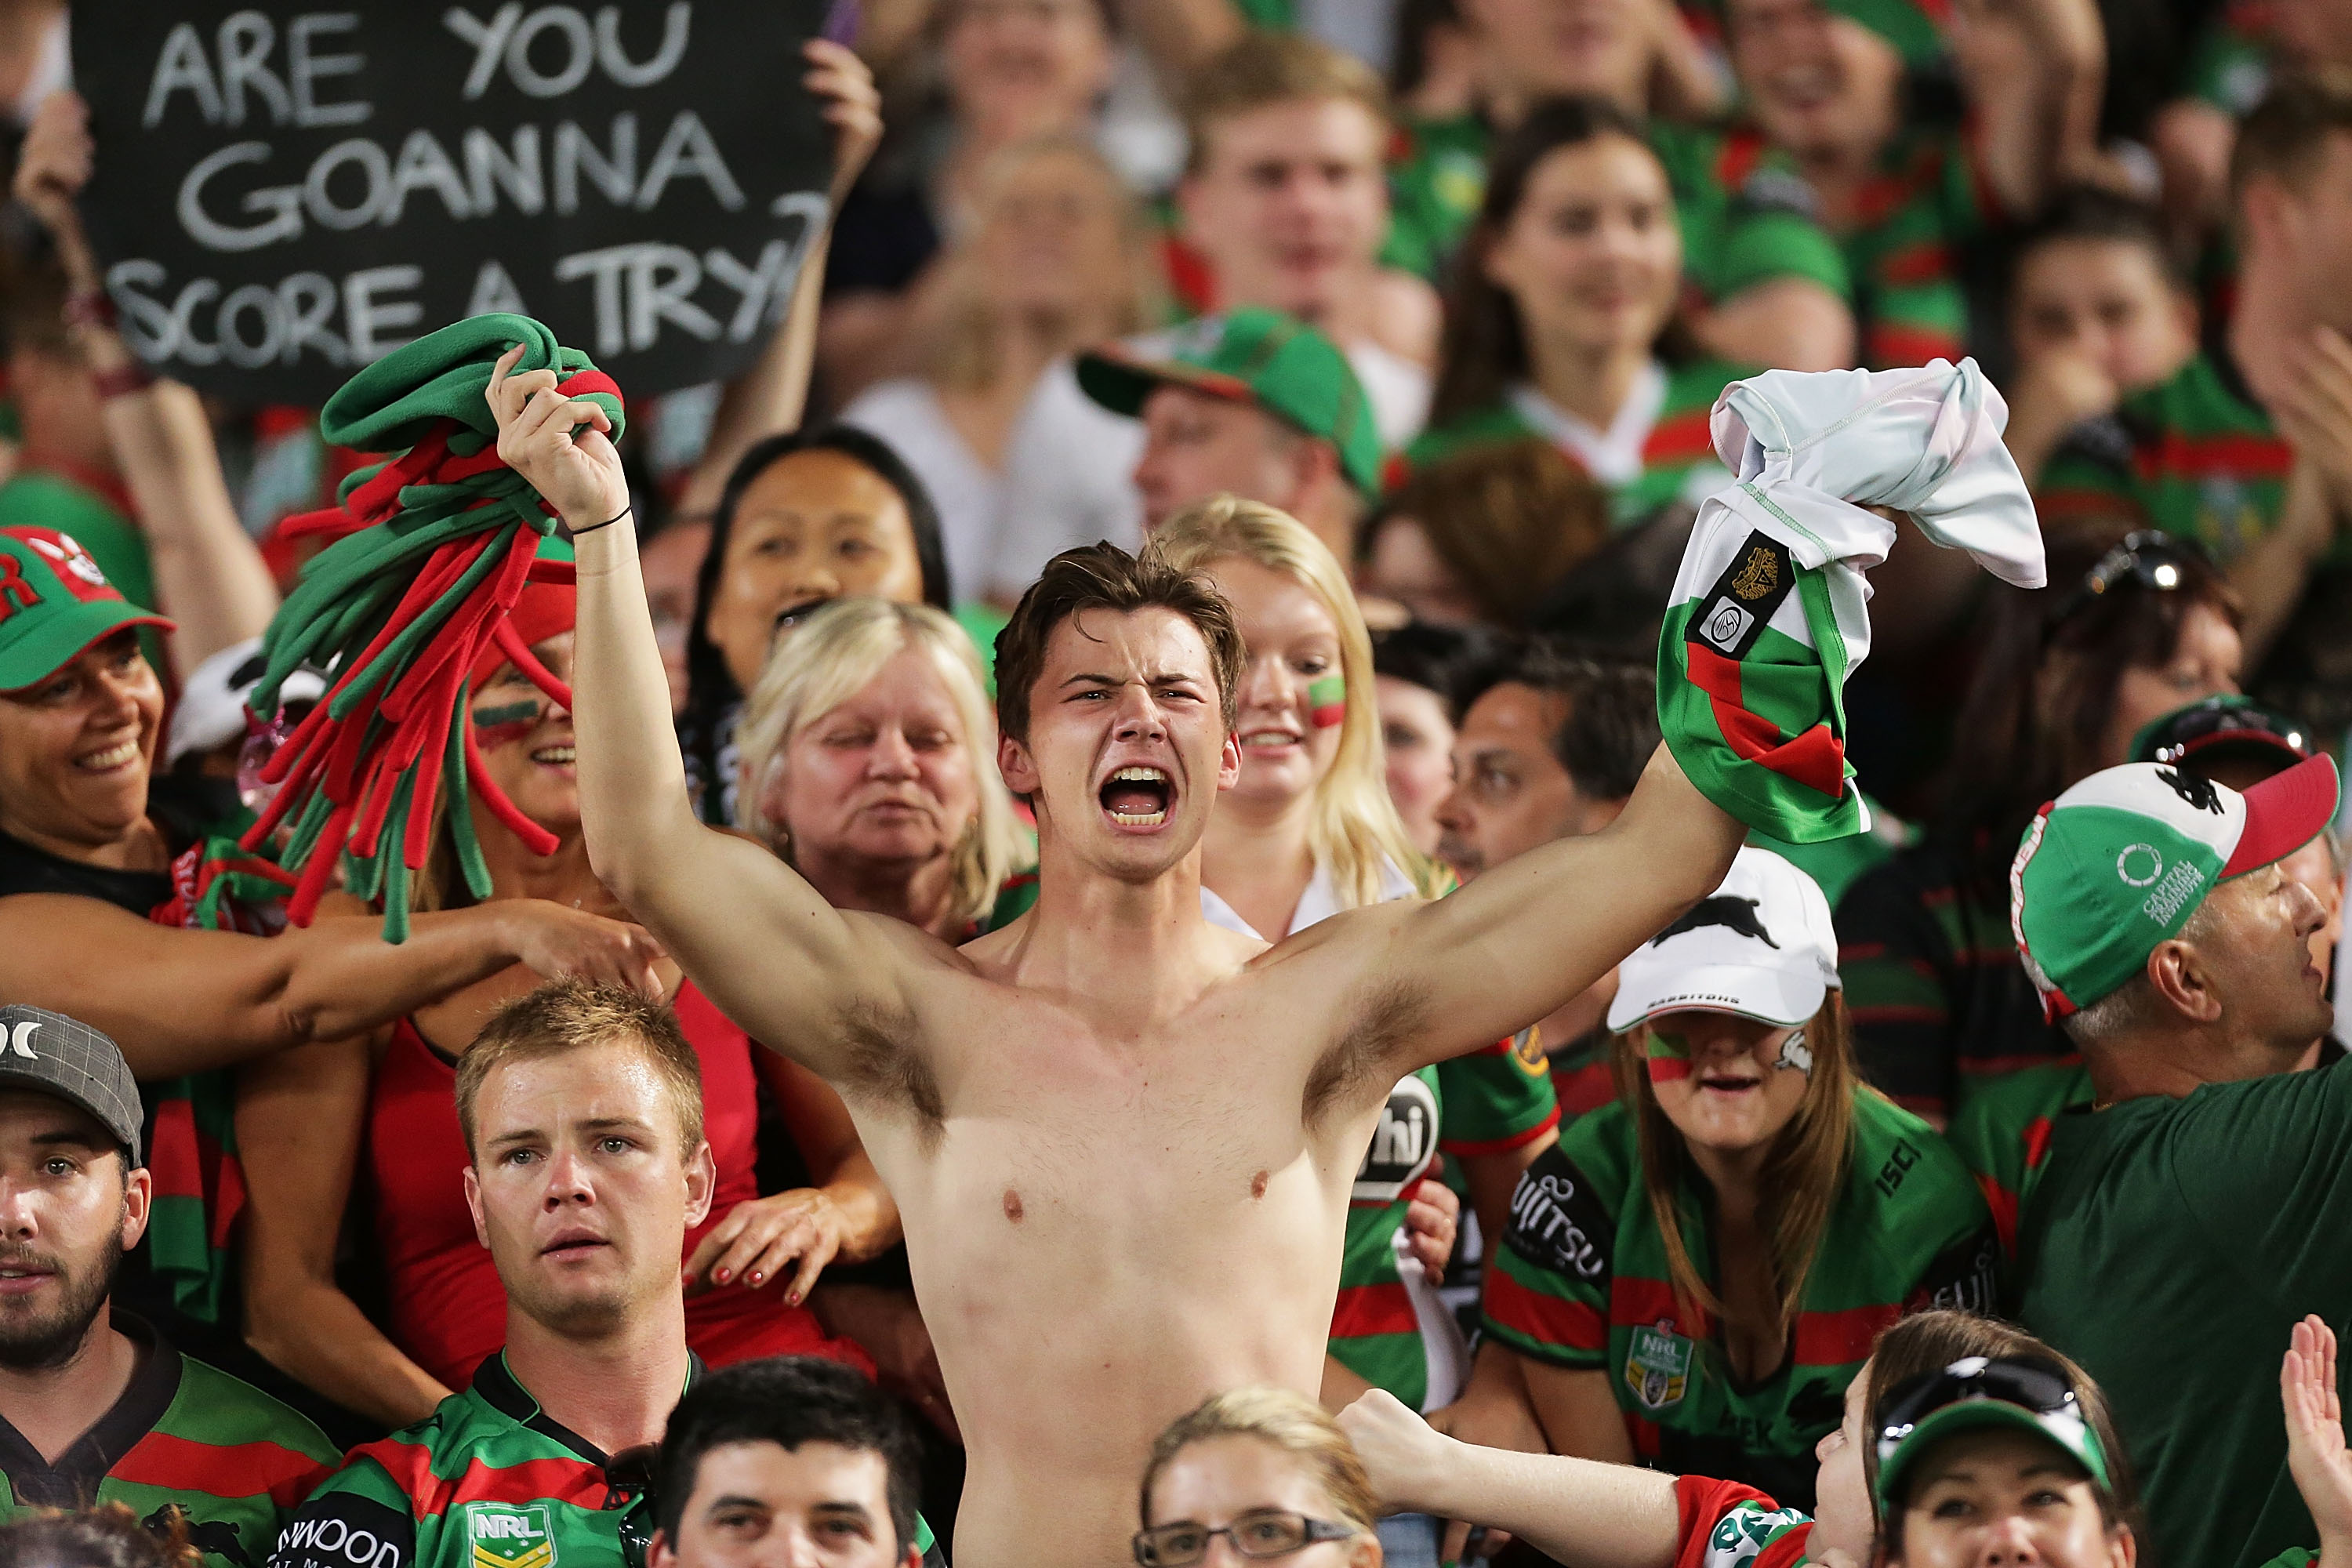 Rabbitohs fans celebrate their team's win.